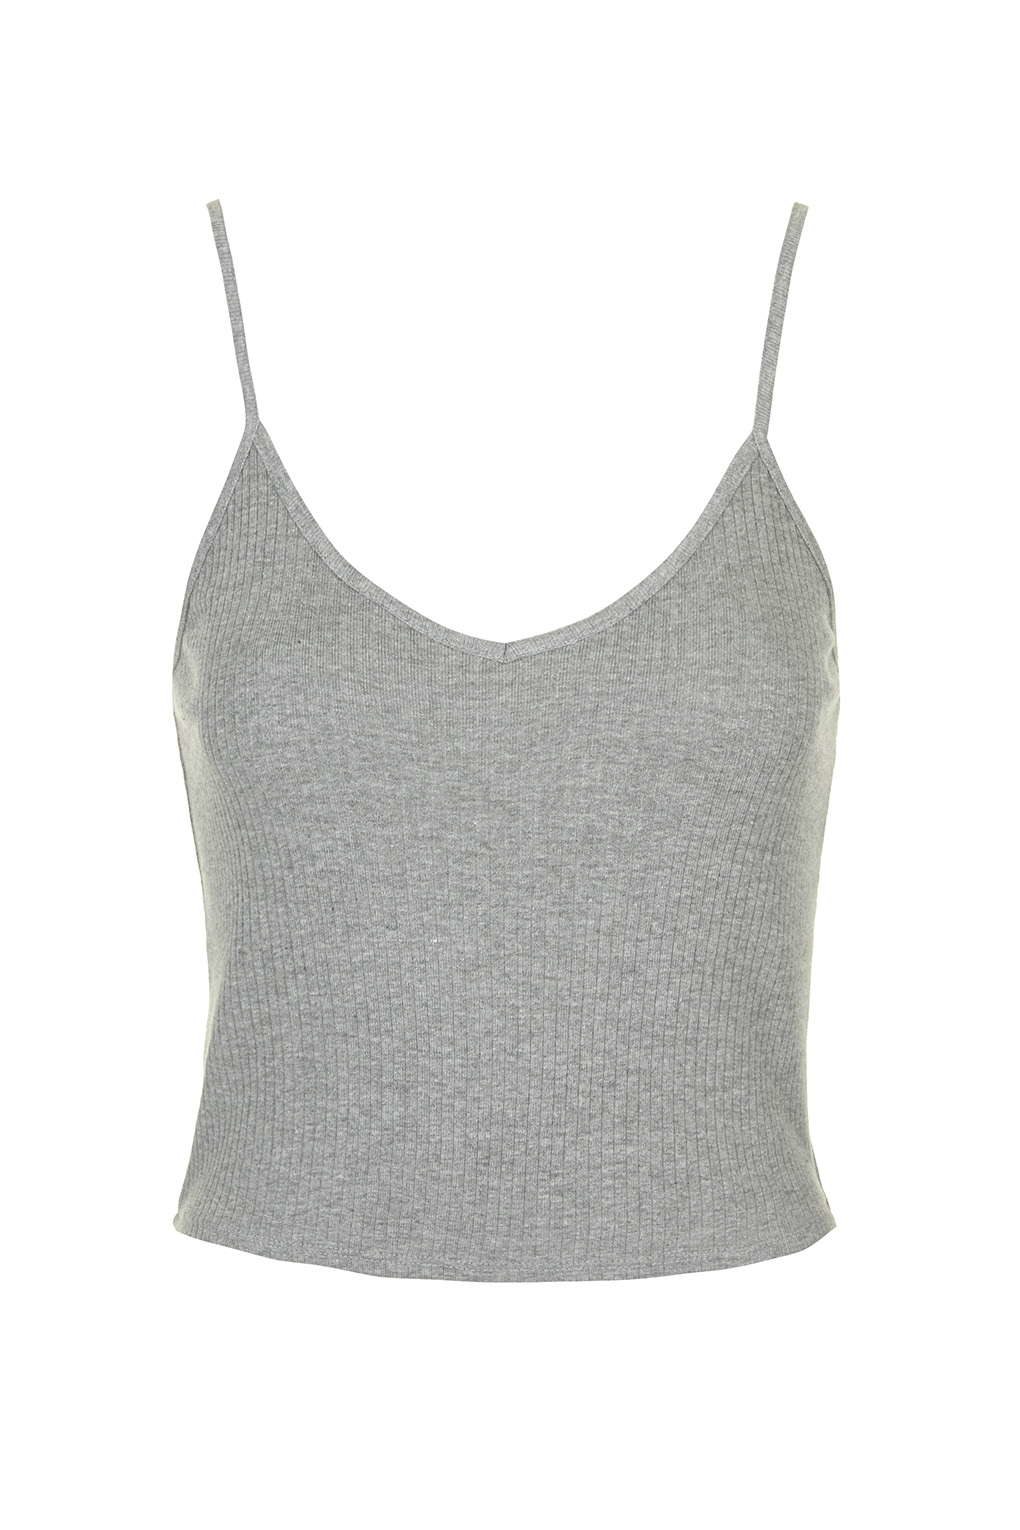 3b33d4029b8bba TOPSHOP Ribbed Cropped Cami in Gray - Lyst